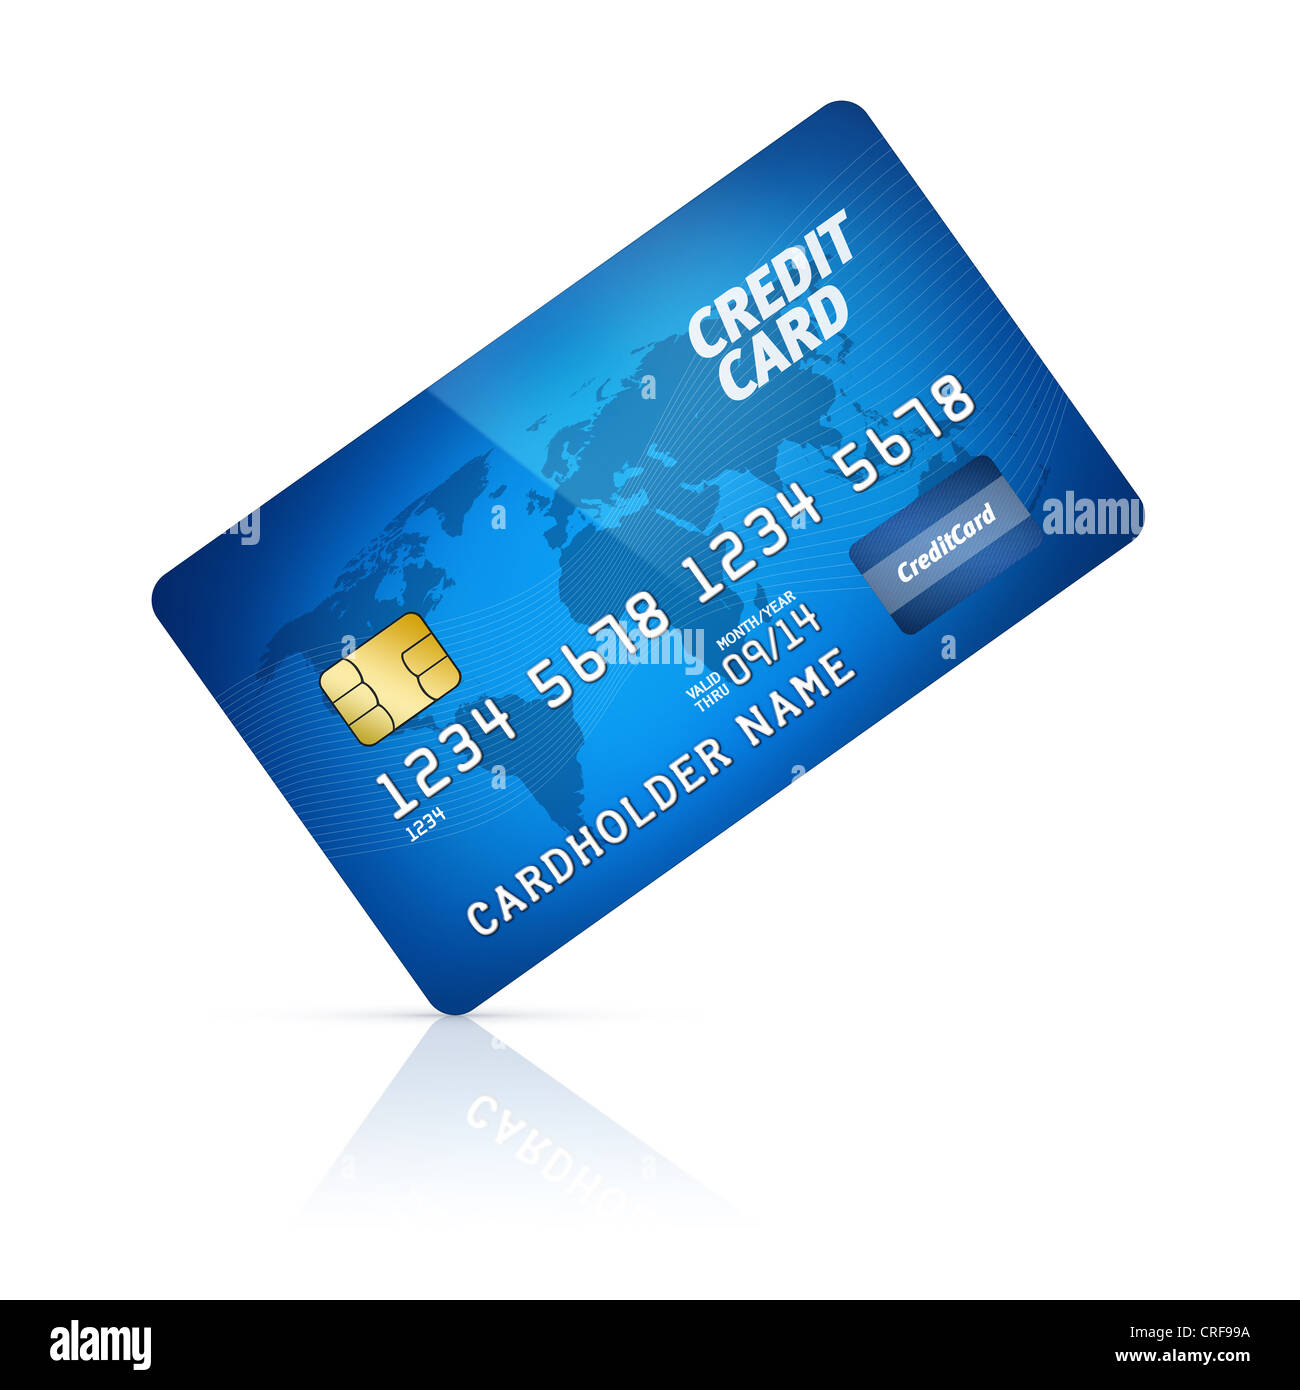 high detail illustration of a plastic credit card isolated on white stock image - Plastic Credit Card